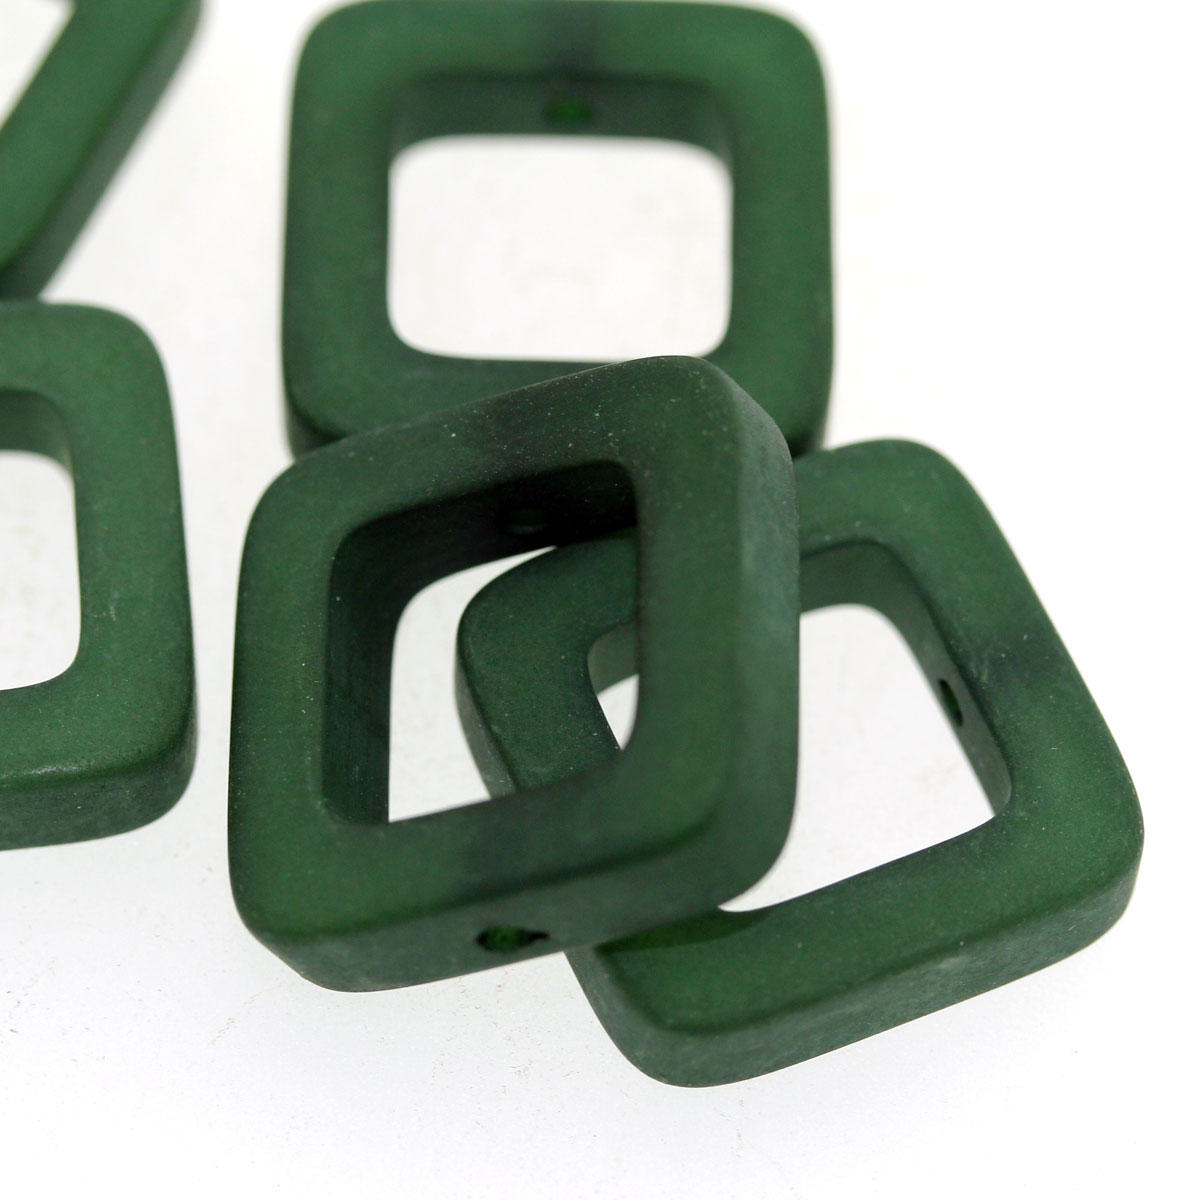 Emerald Green Polaris Quadro Bead